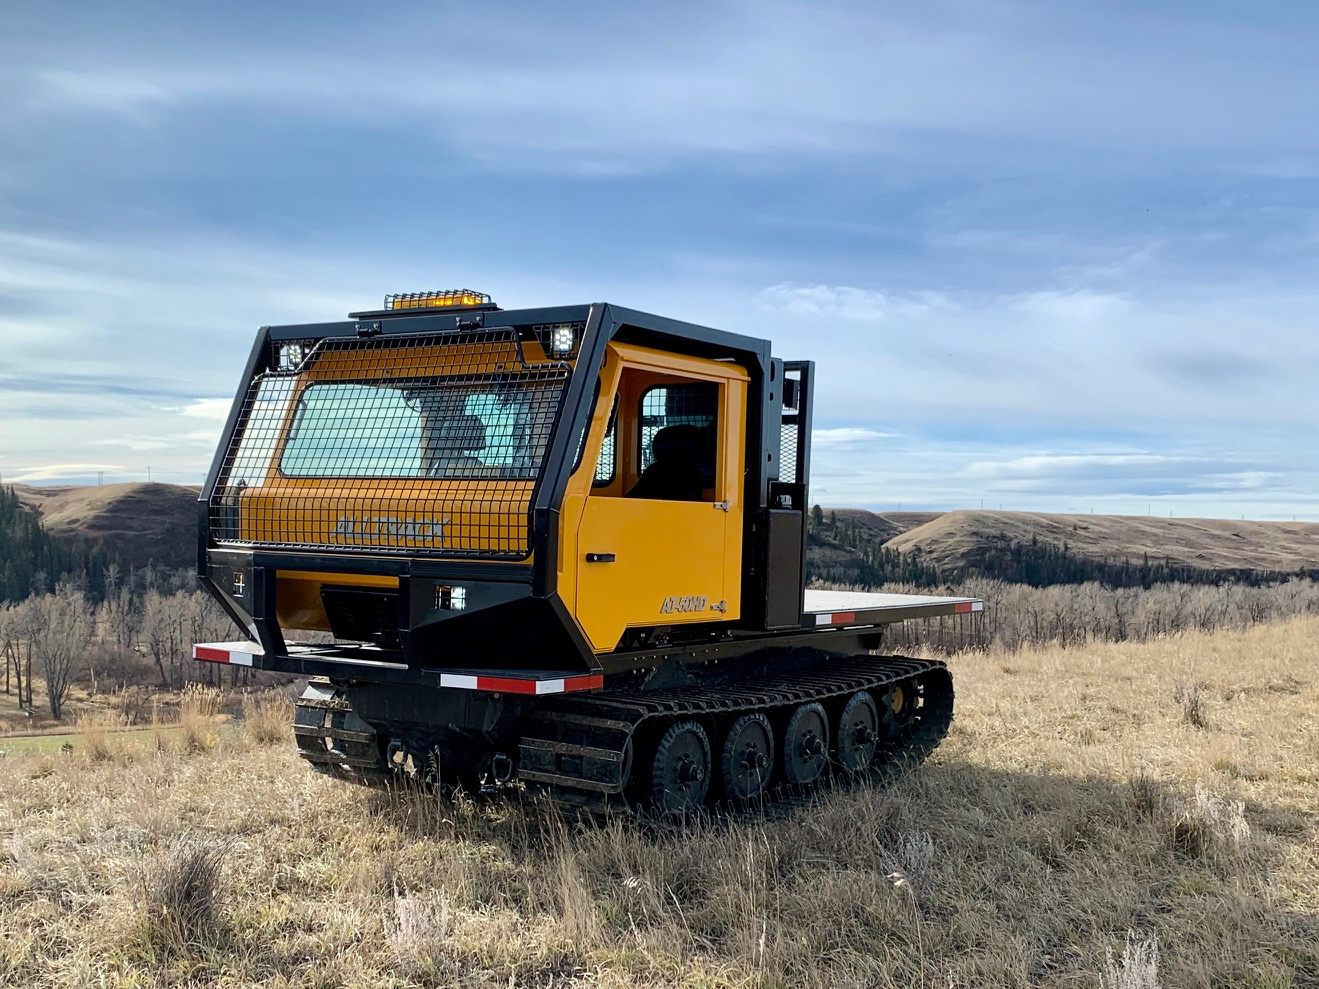 ALLTRACK AT-50HD WILDLAND FIREFIGHTING Tracked VEHICLE